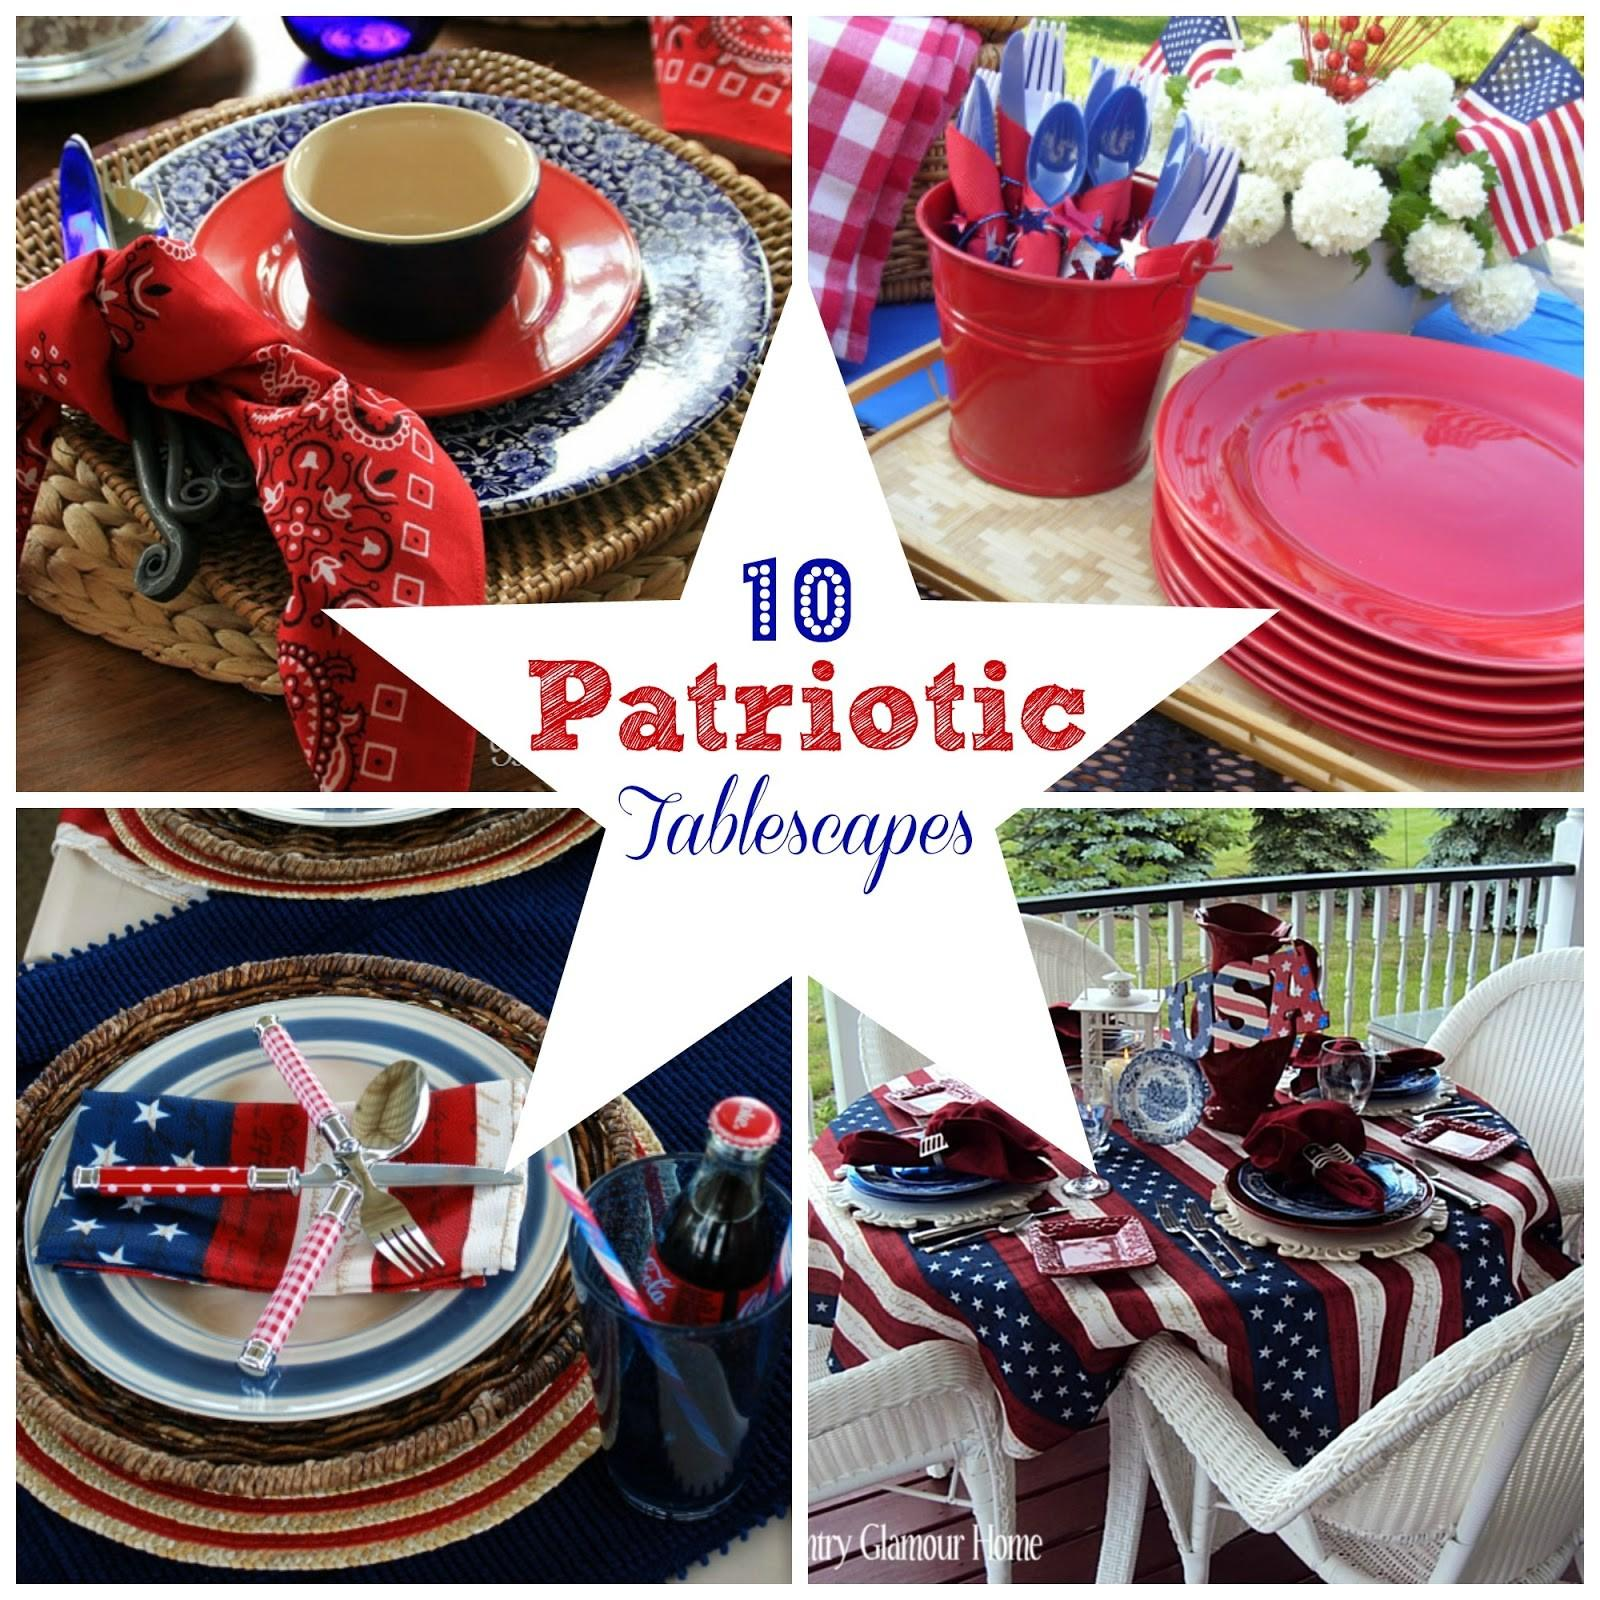 Patriotic Tablescapes Fun Home Things